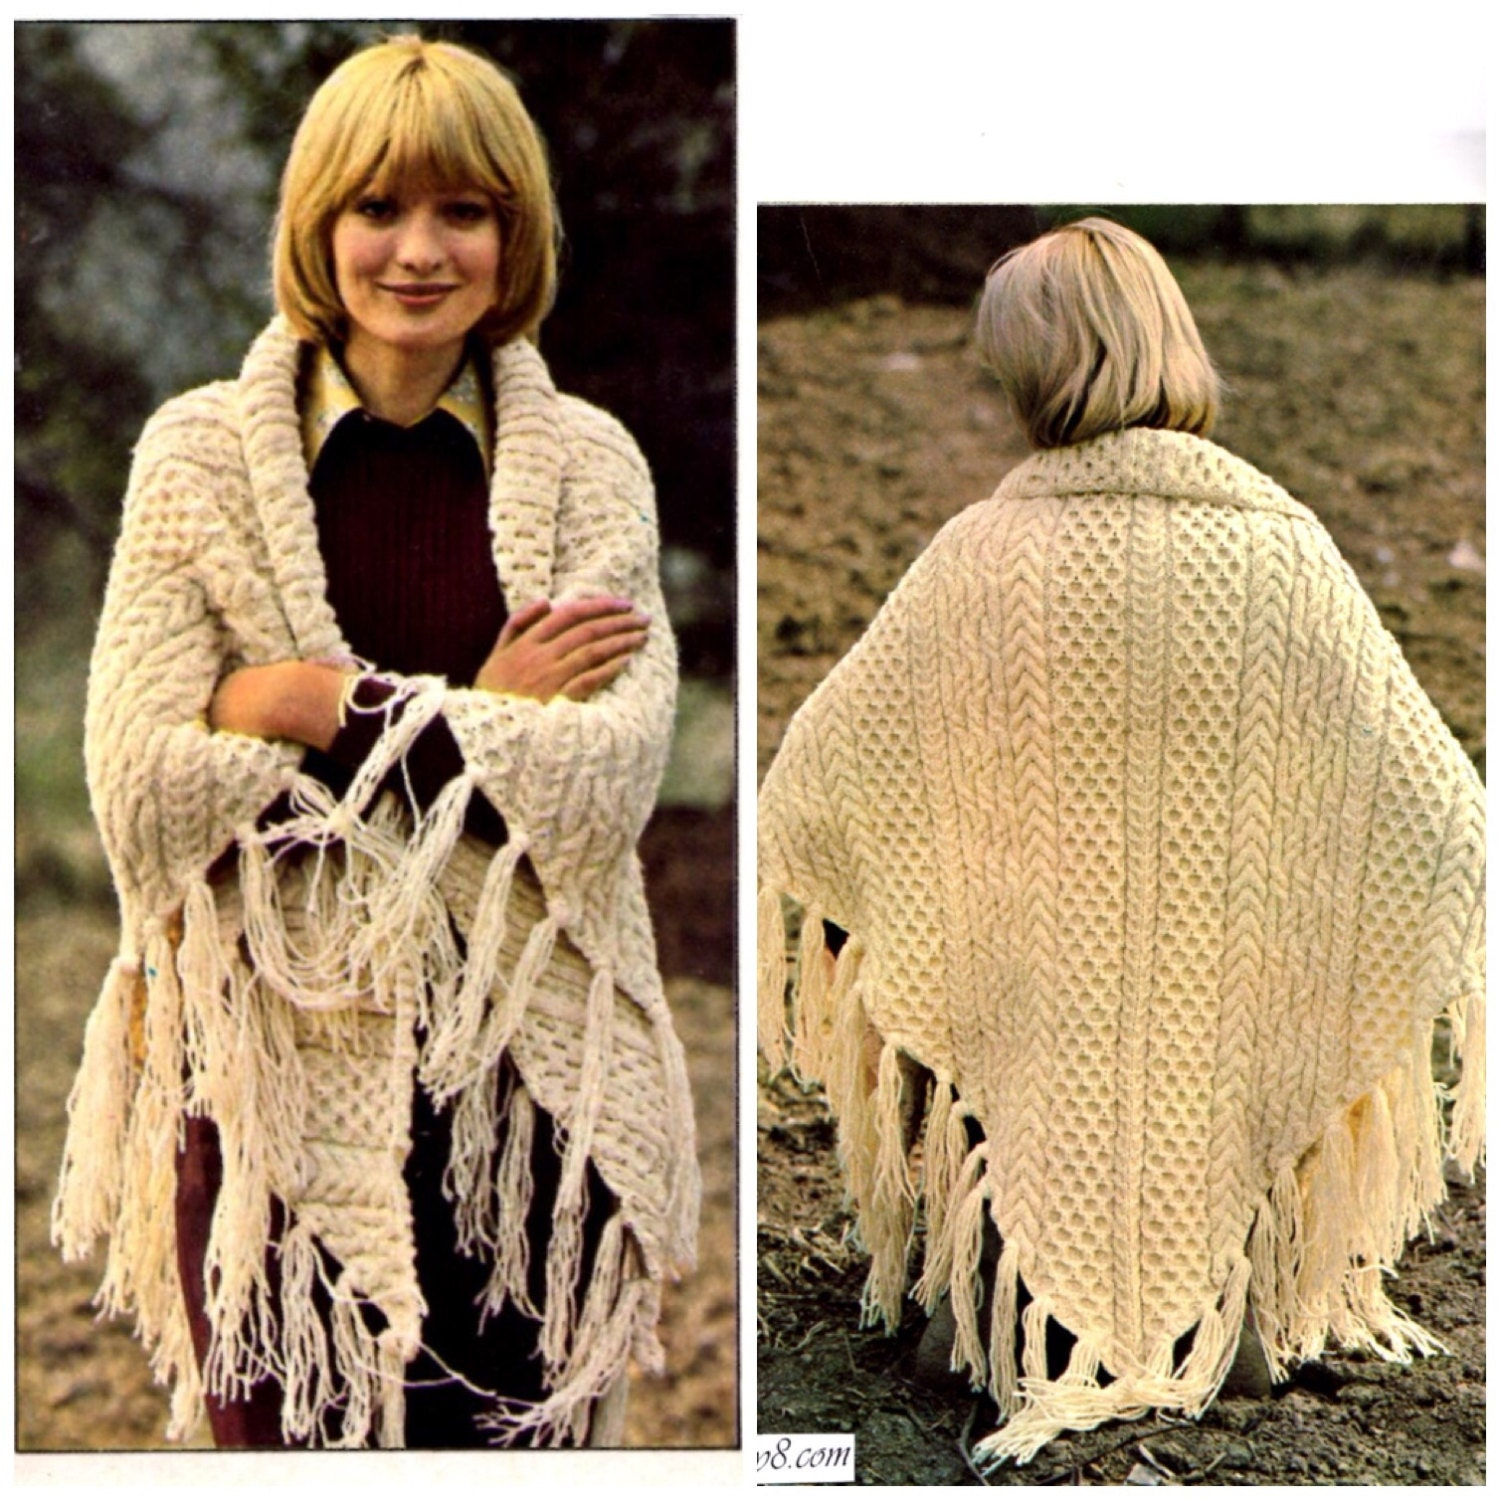 Vintage Shawl Knitting Patterns : Vintage Shawl knitting pattern in PDF instant download